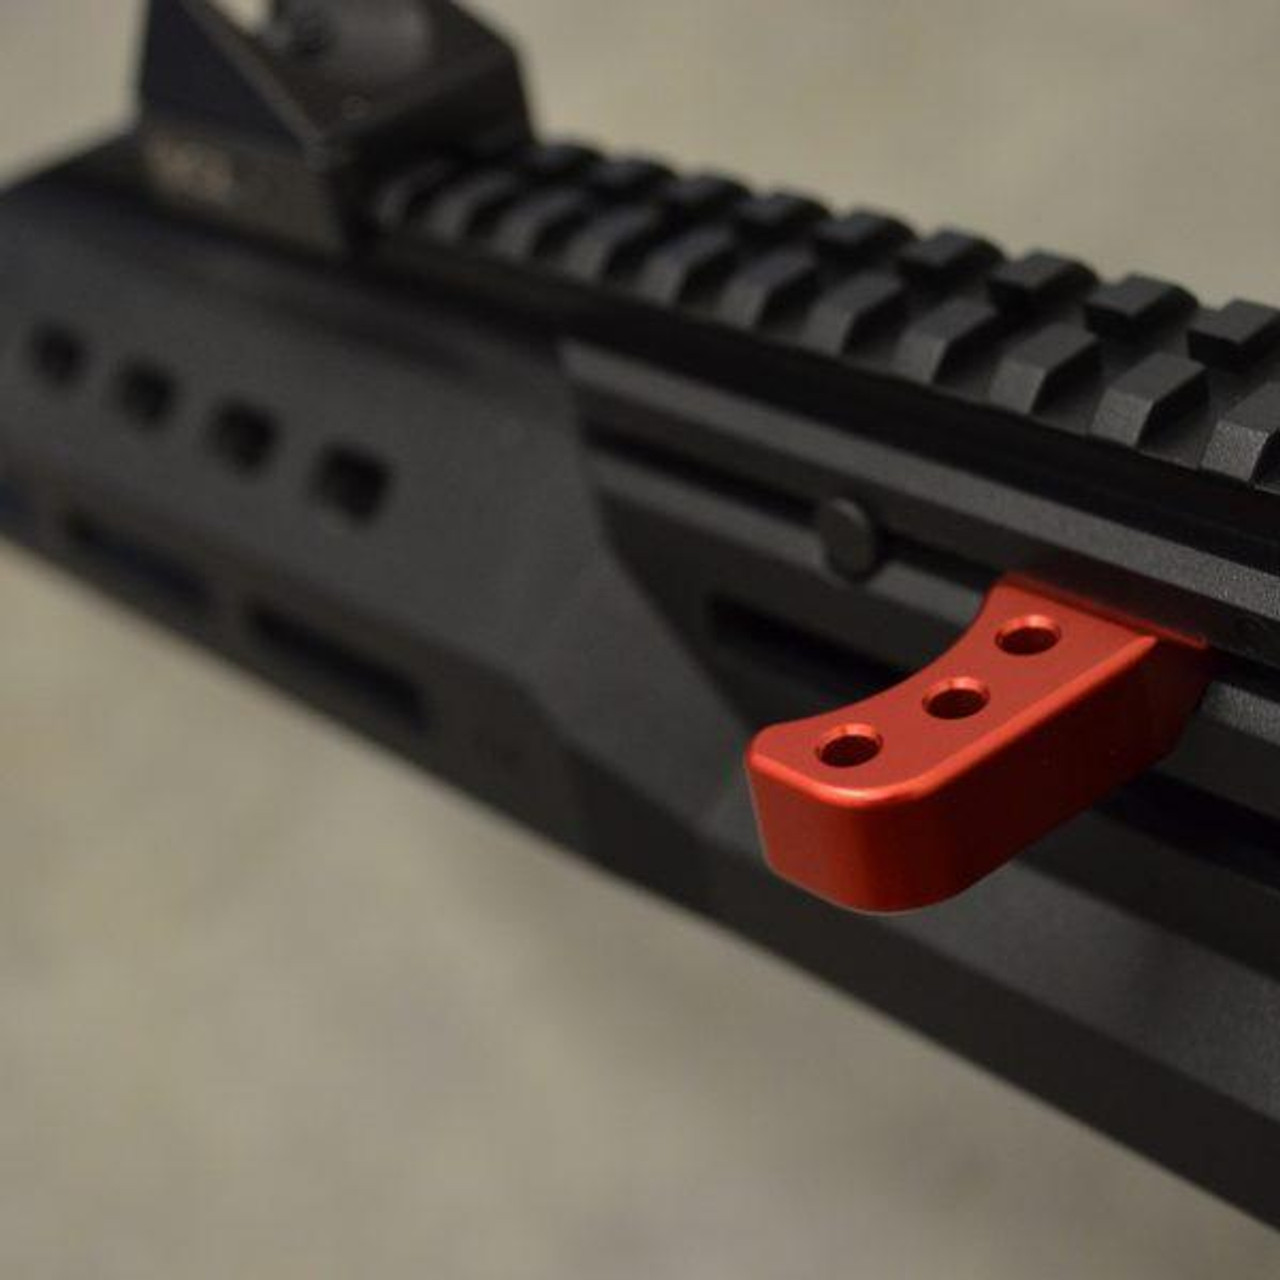 HB Industries CZ Scorpion EVO 3 Theta Extended Charging Handle (Red or Black)